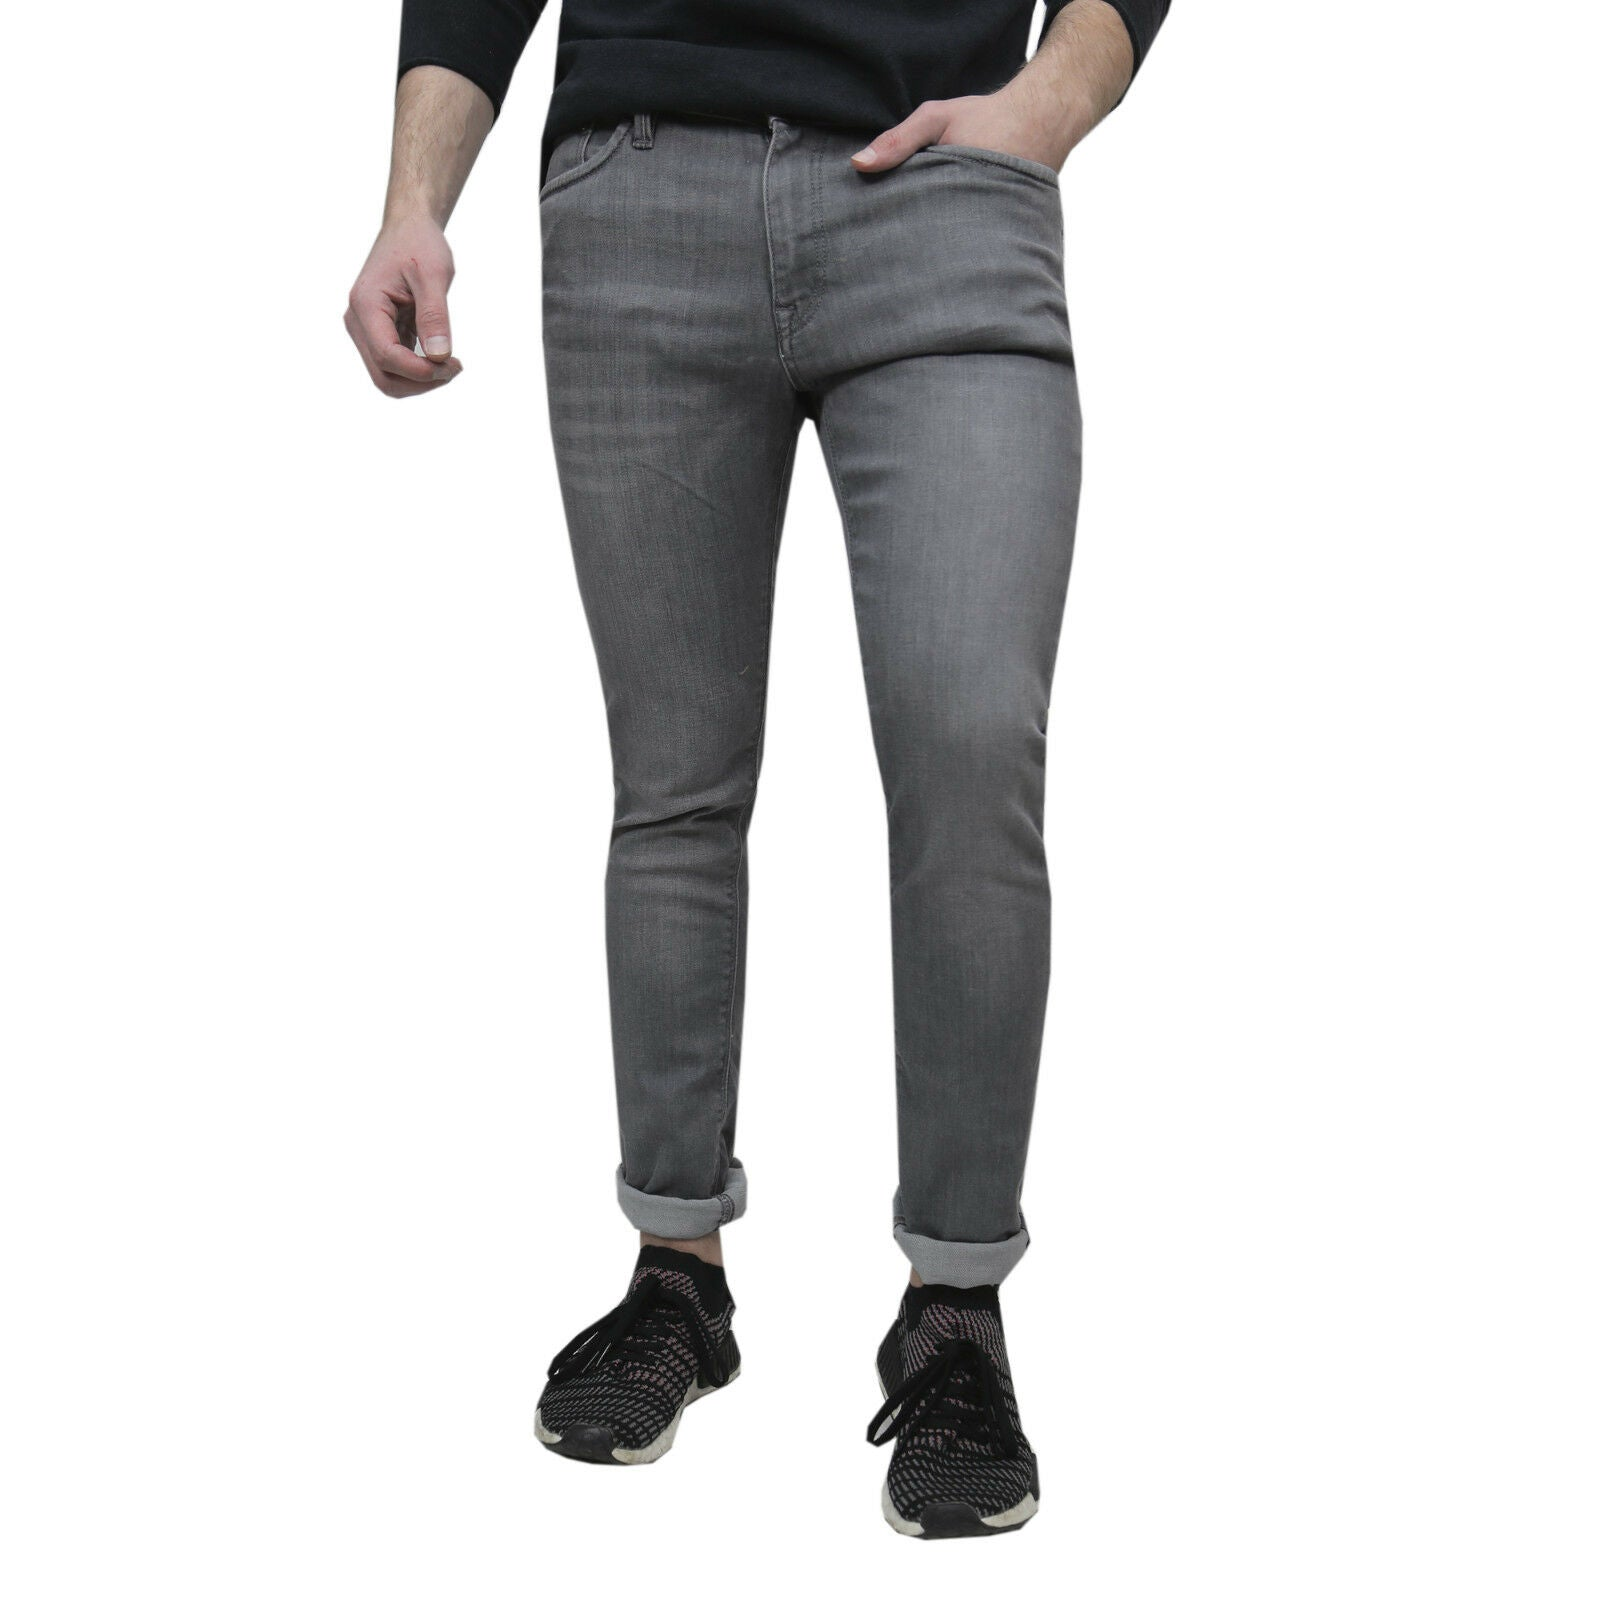 JACK & JONES Herren Stretch Slim Jeans Grau Grey Denim